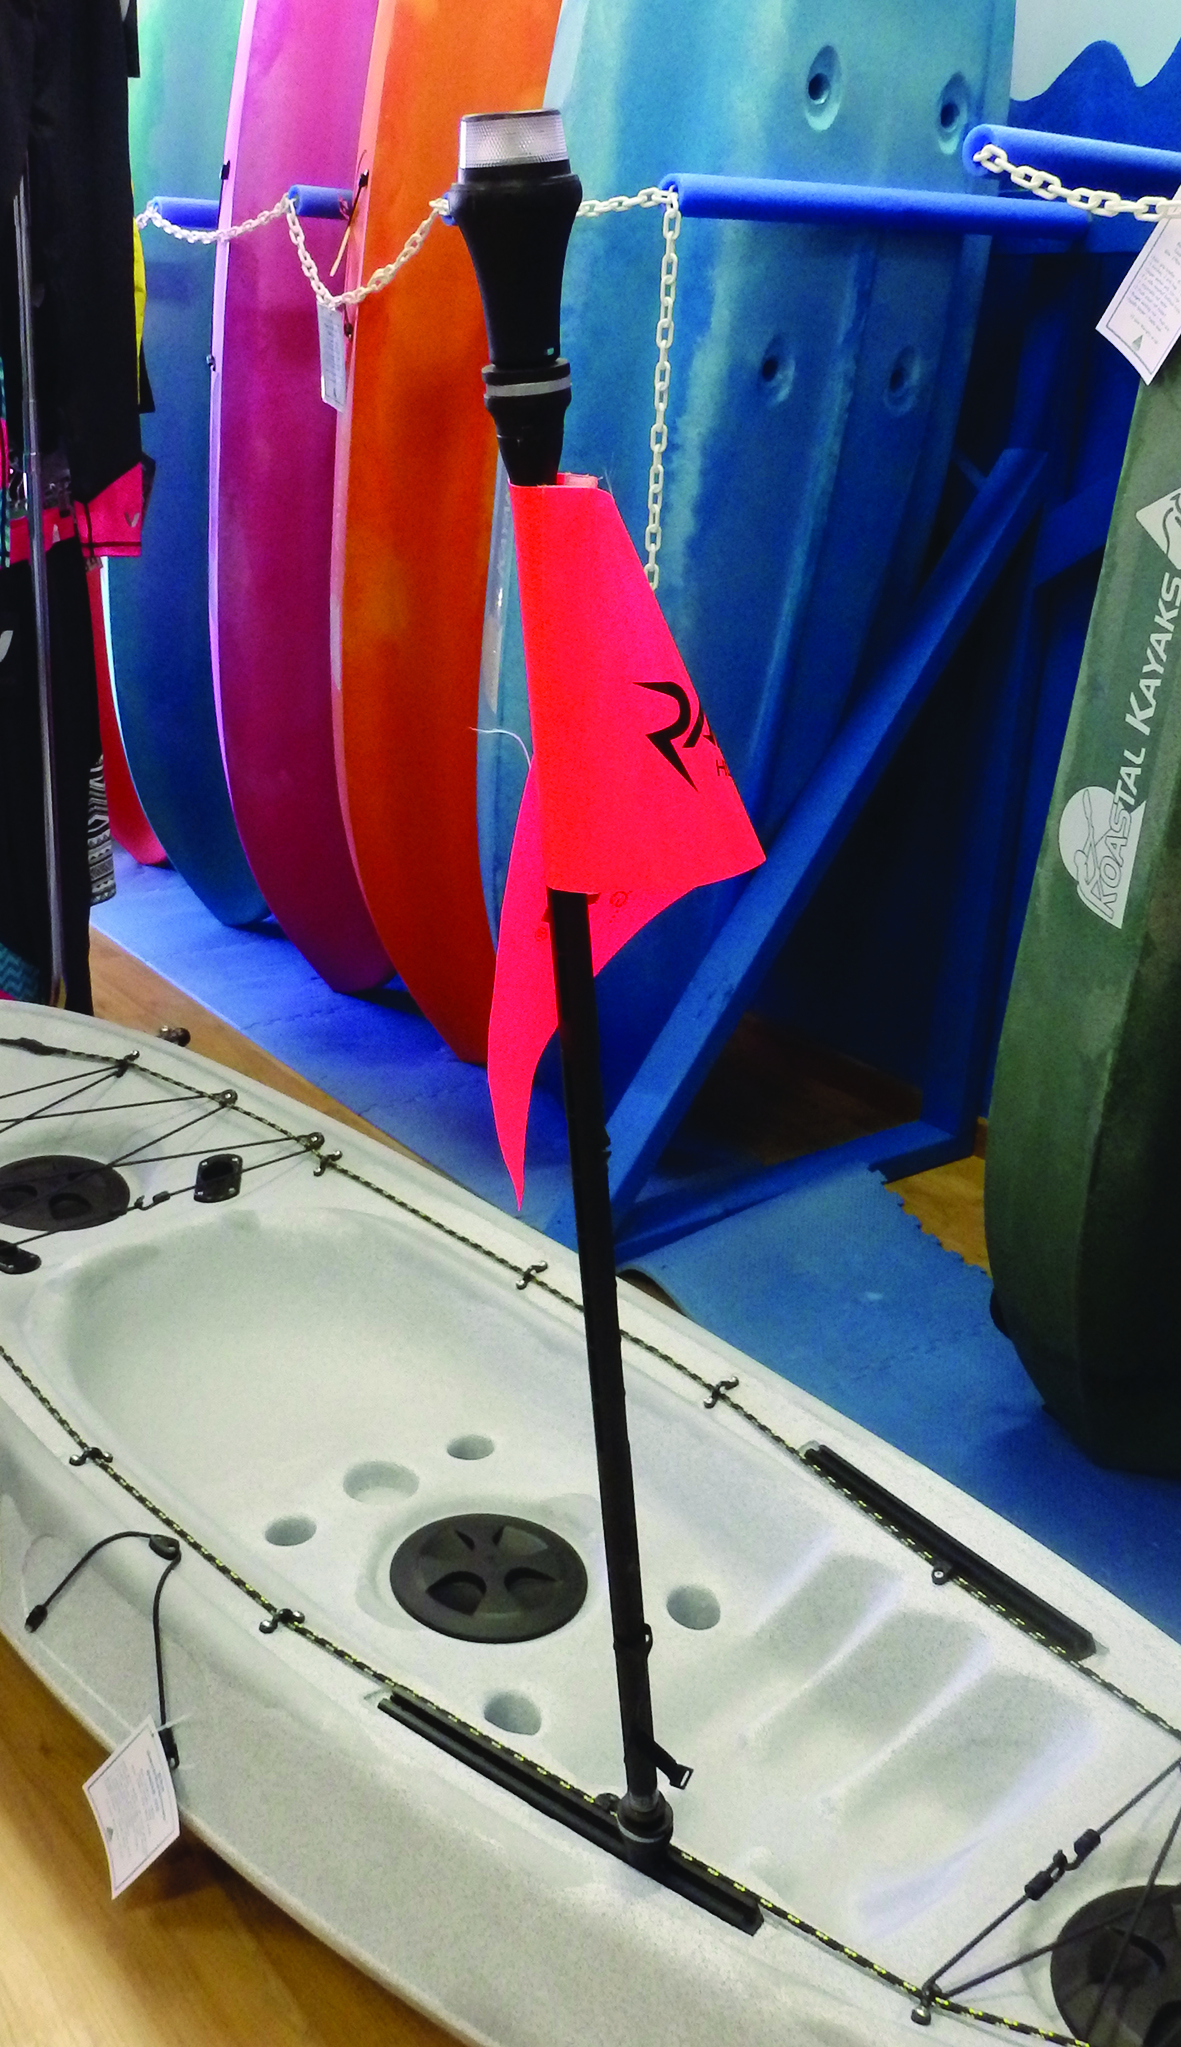 Make sure you're easily visible on the water.